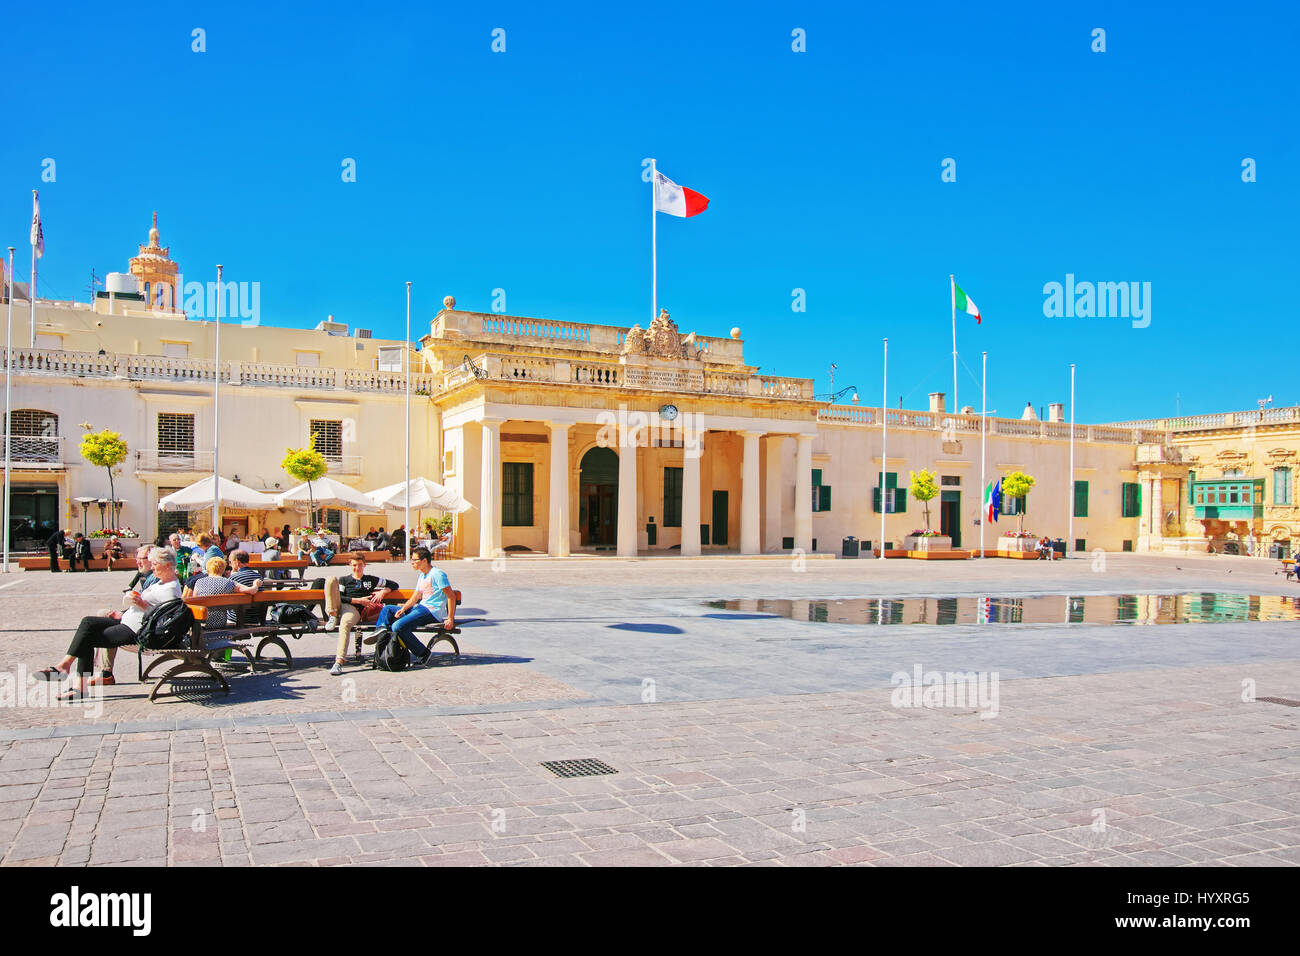 Valletta, Malta - April 1, 2014: People at Main Guard house on St George Square in Valletta old town, Malta - Stock Image